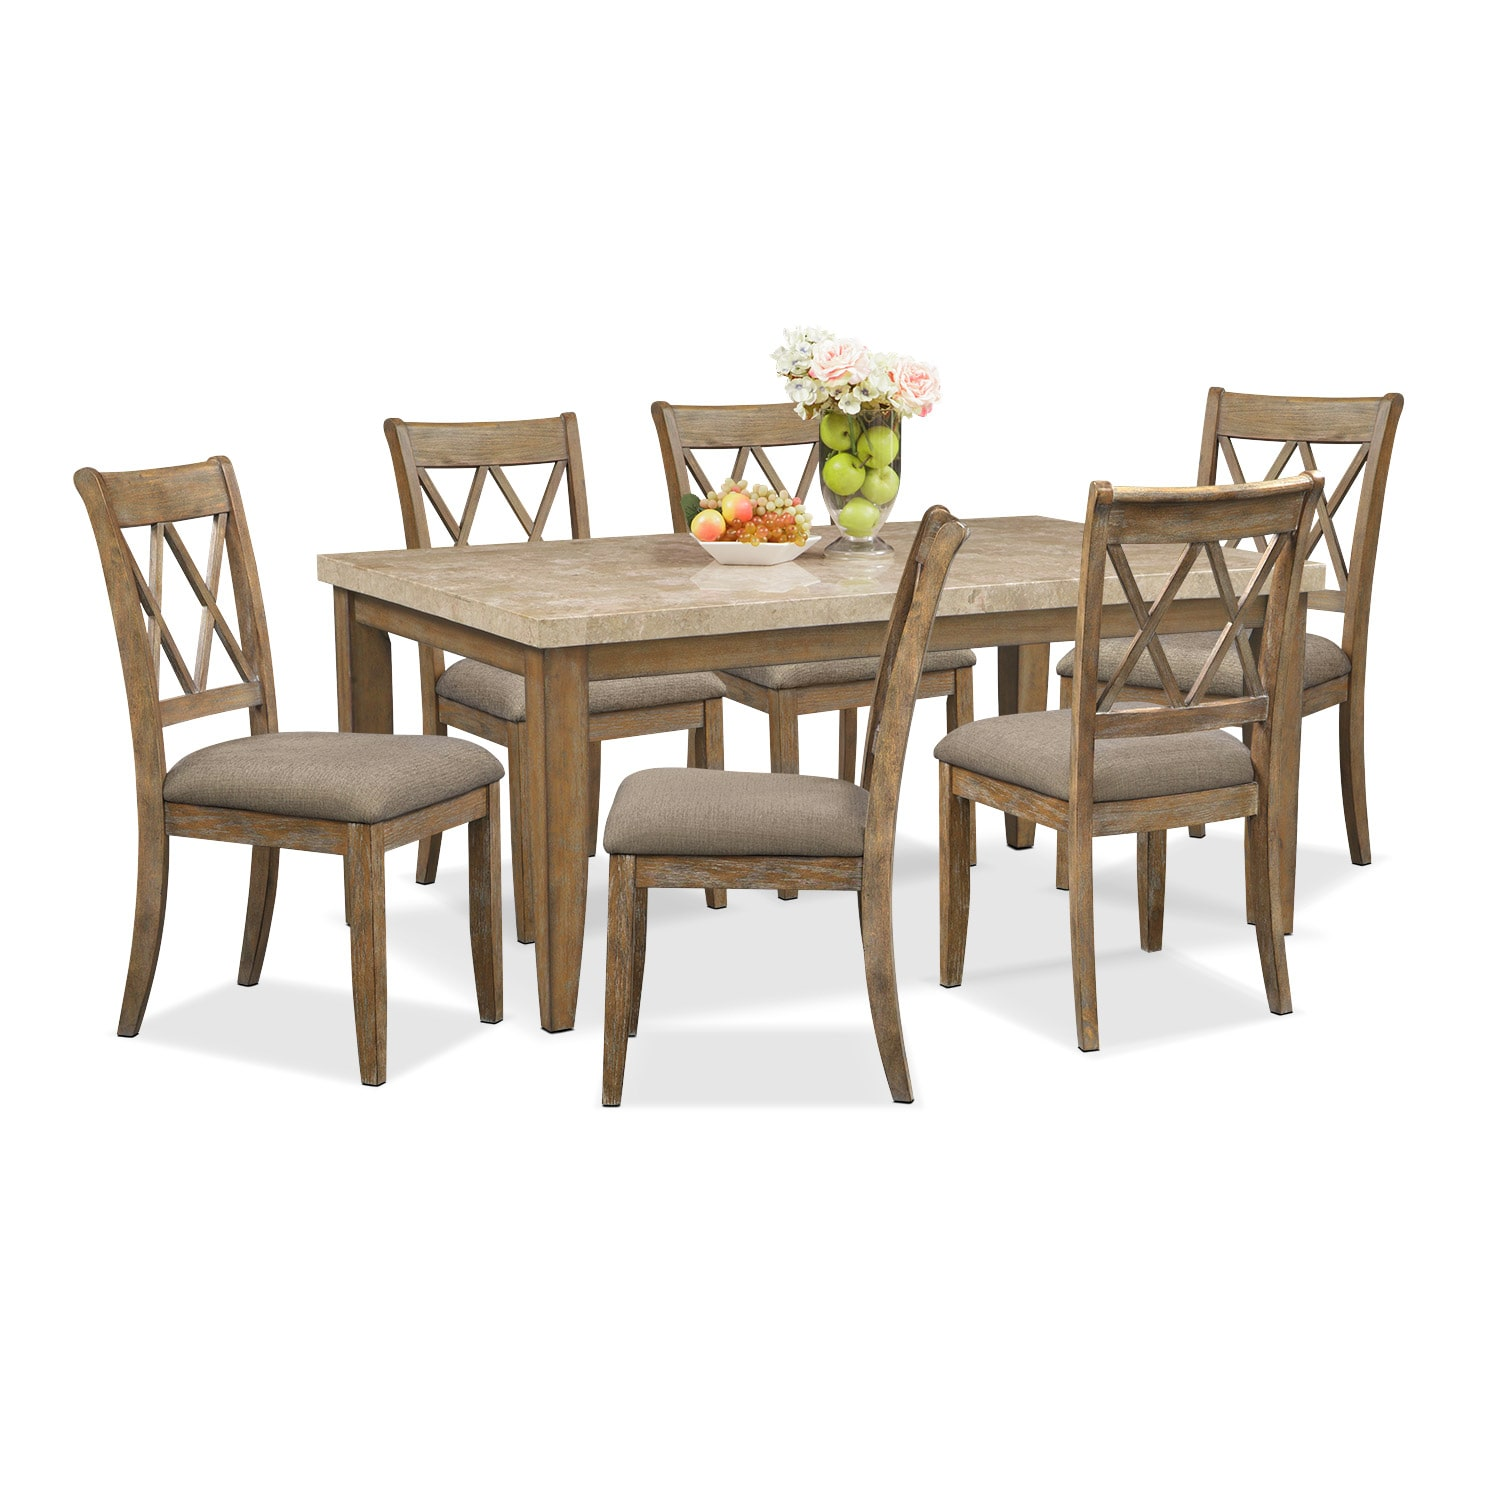 Sedona Gray 7 Pc. Dining Room